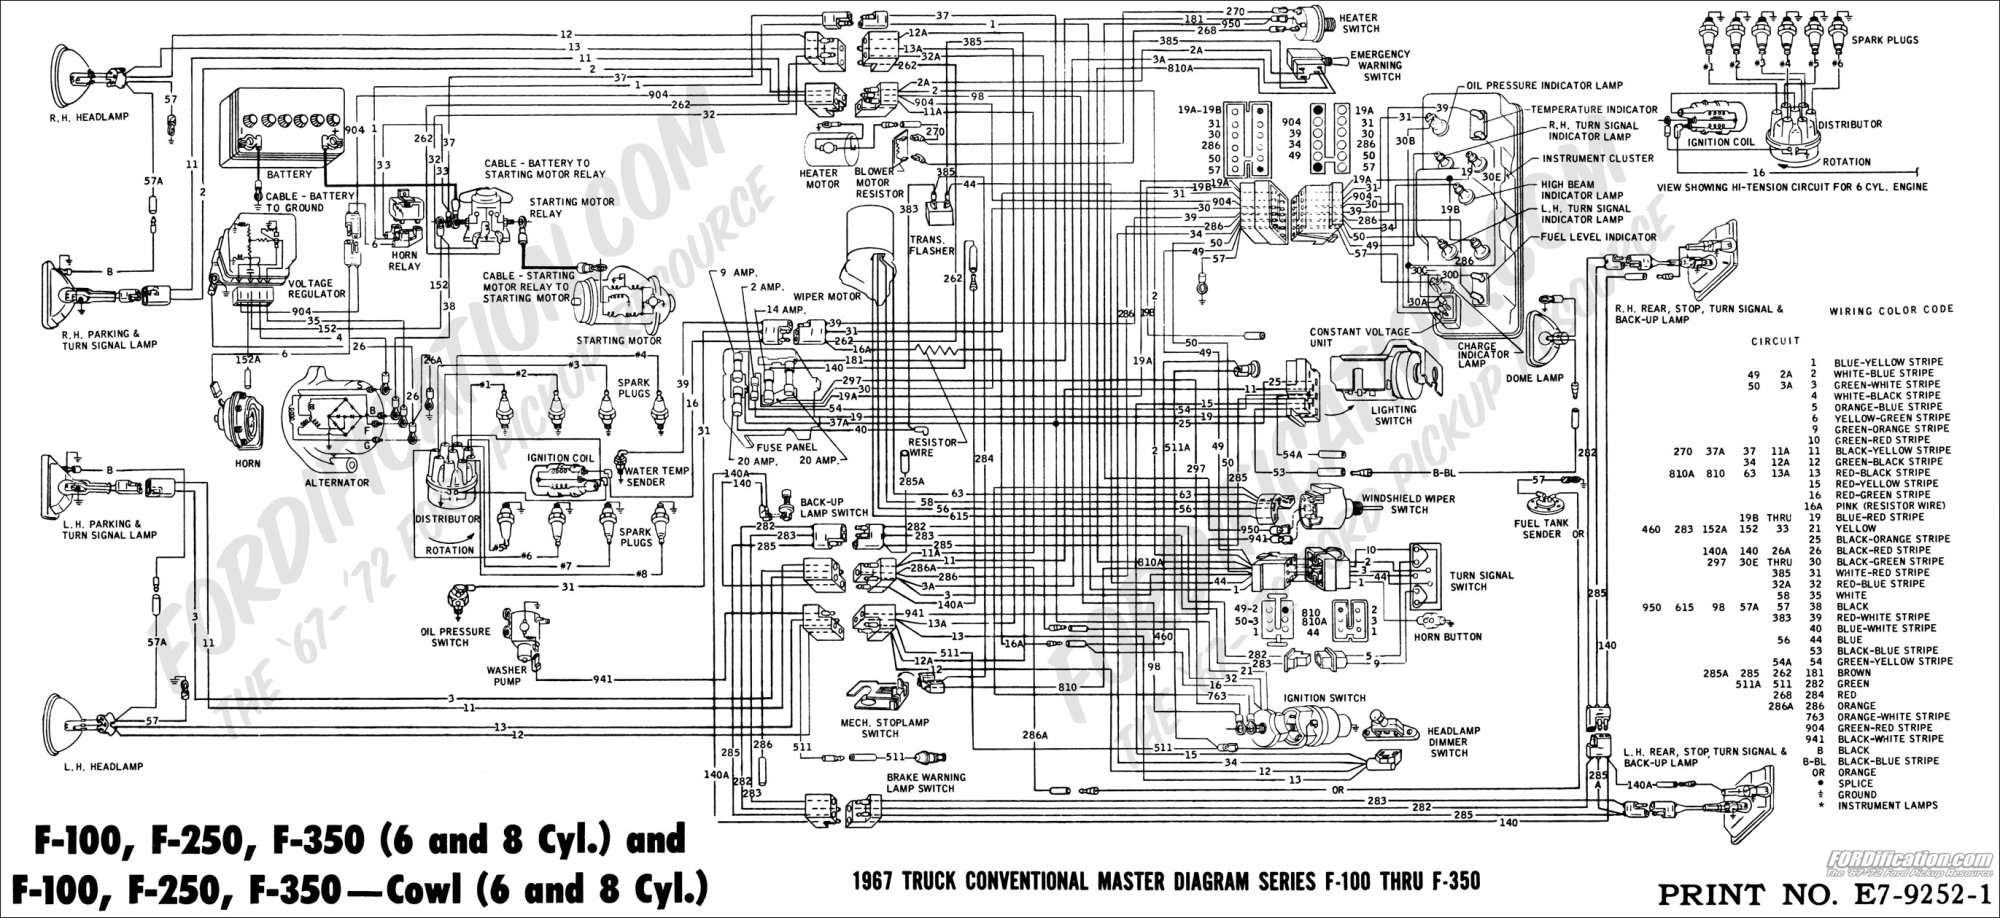 hight resolution of 1970 ford truck wiring harness wiring diagram third level wiring harness diagram 1970 ford truck wire